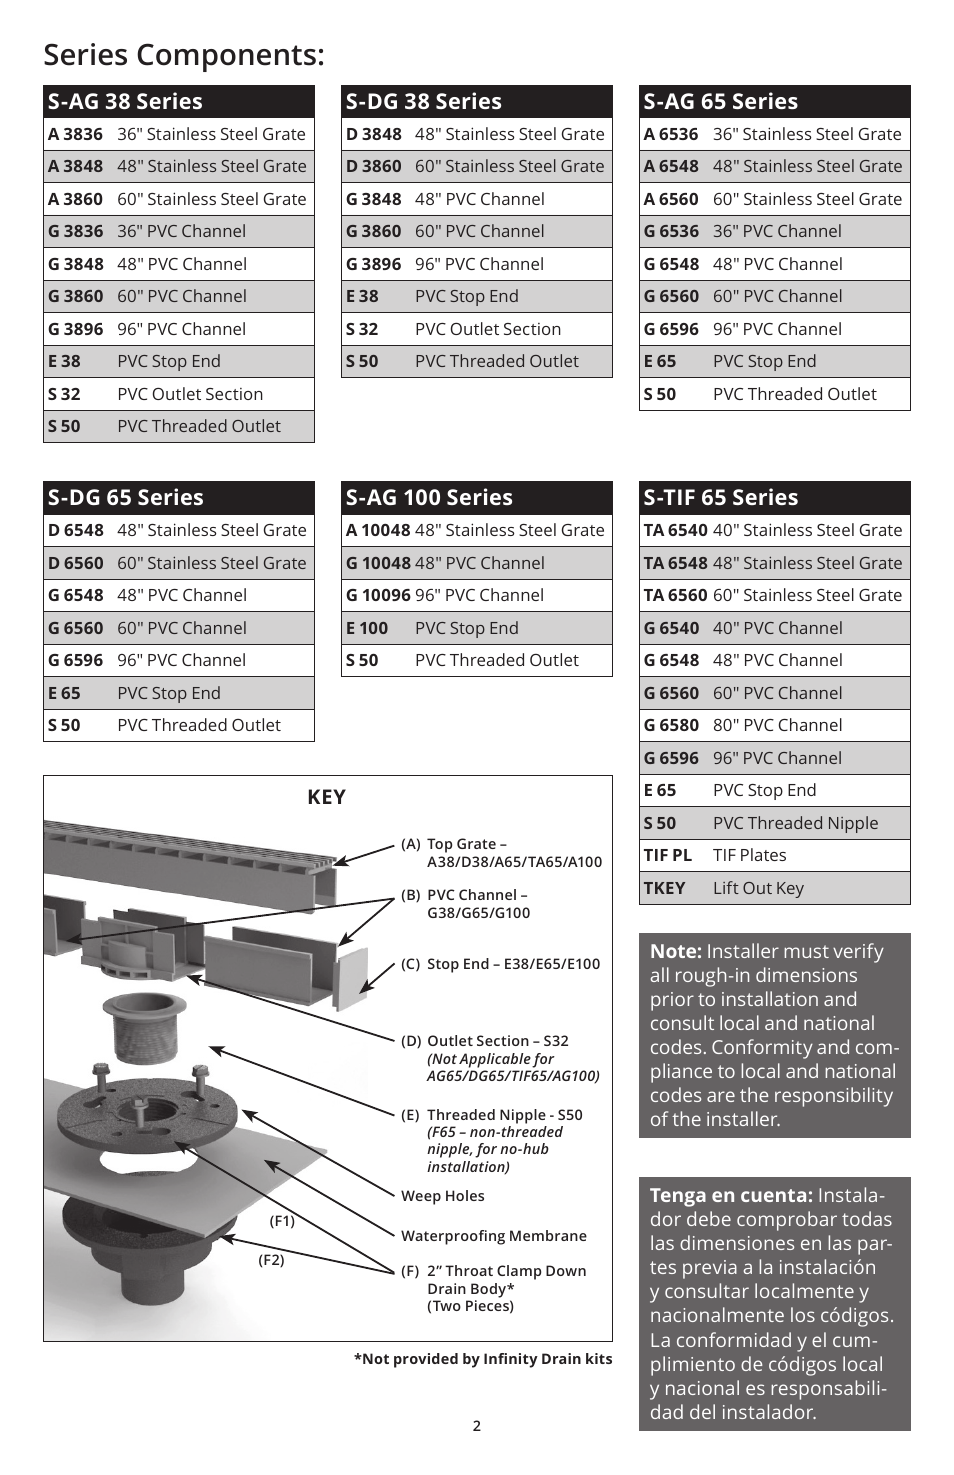 Infinity drains home page free image - Infinity drains home page - Series Components S Ag 38 Series S Dg 65 Series  Infinity